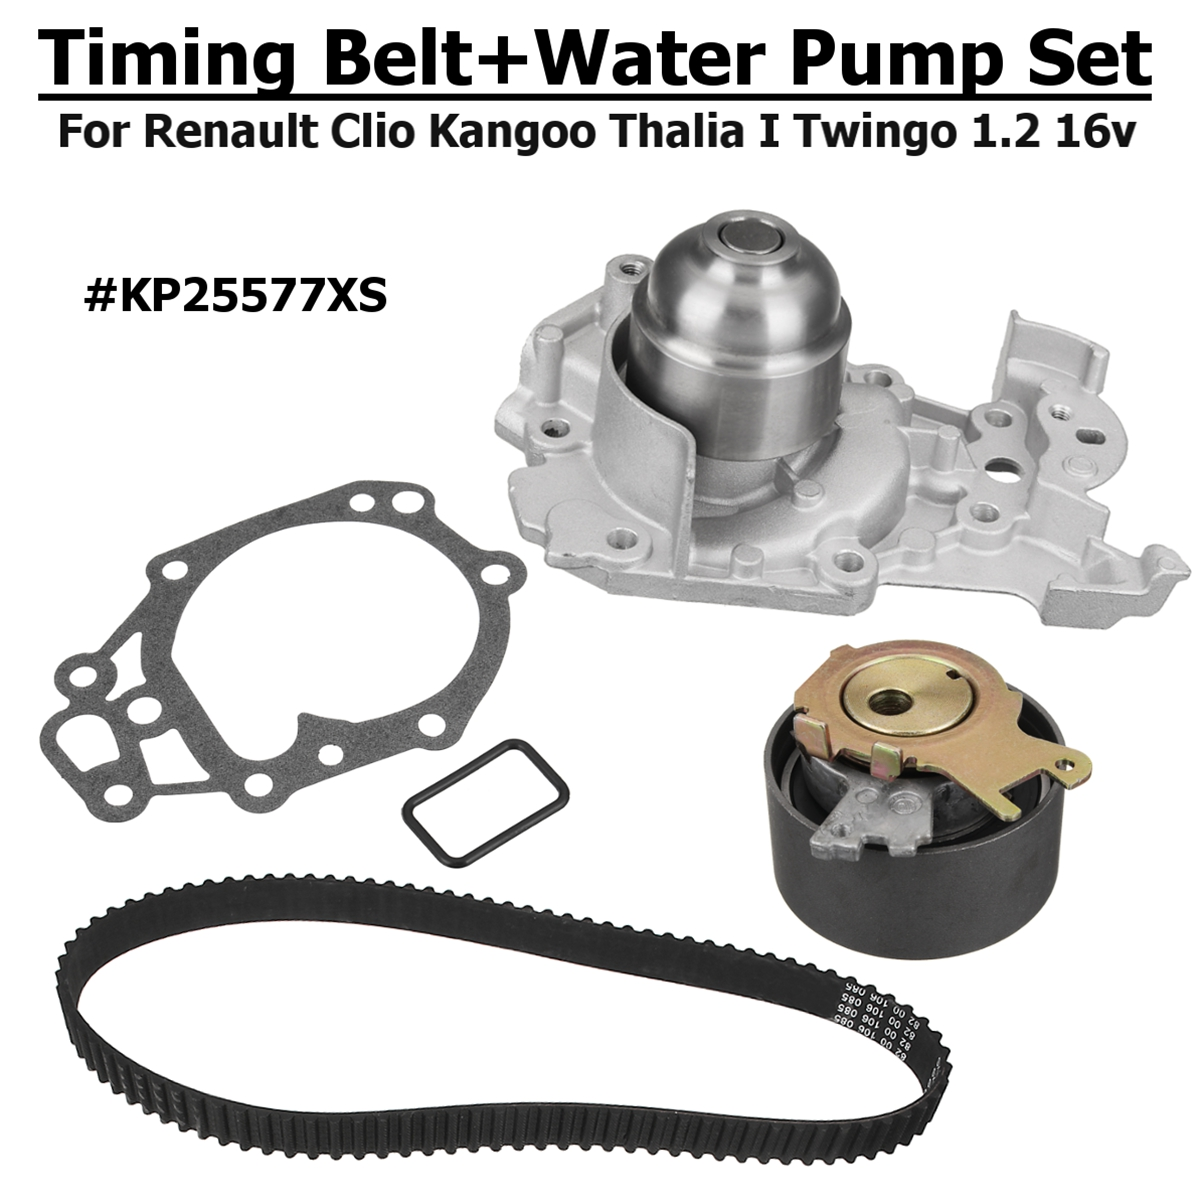 1.2 16v Gates Timing Belt+Water Pump #KP25577XS For Renault Clio Clio  Grandtour Kangoo Modus/Grand Modus Thalia Thalia I-in Water Pumps from  Automobiles ...